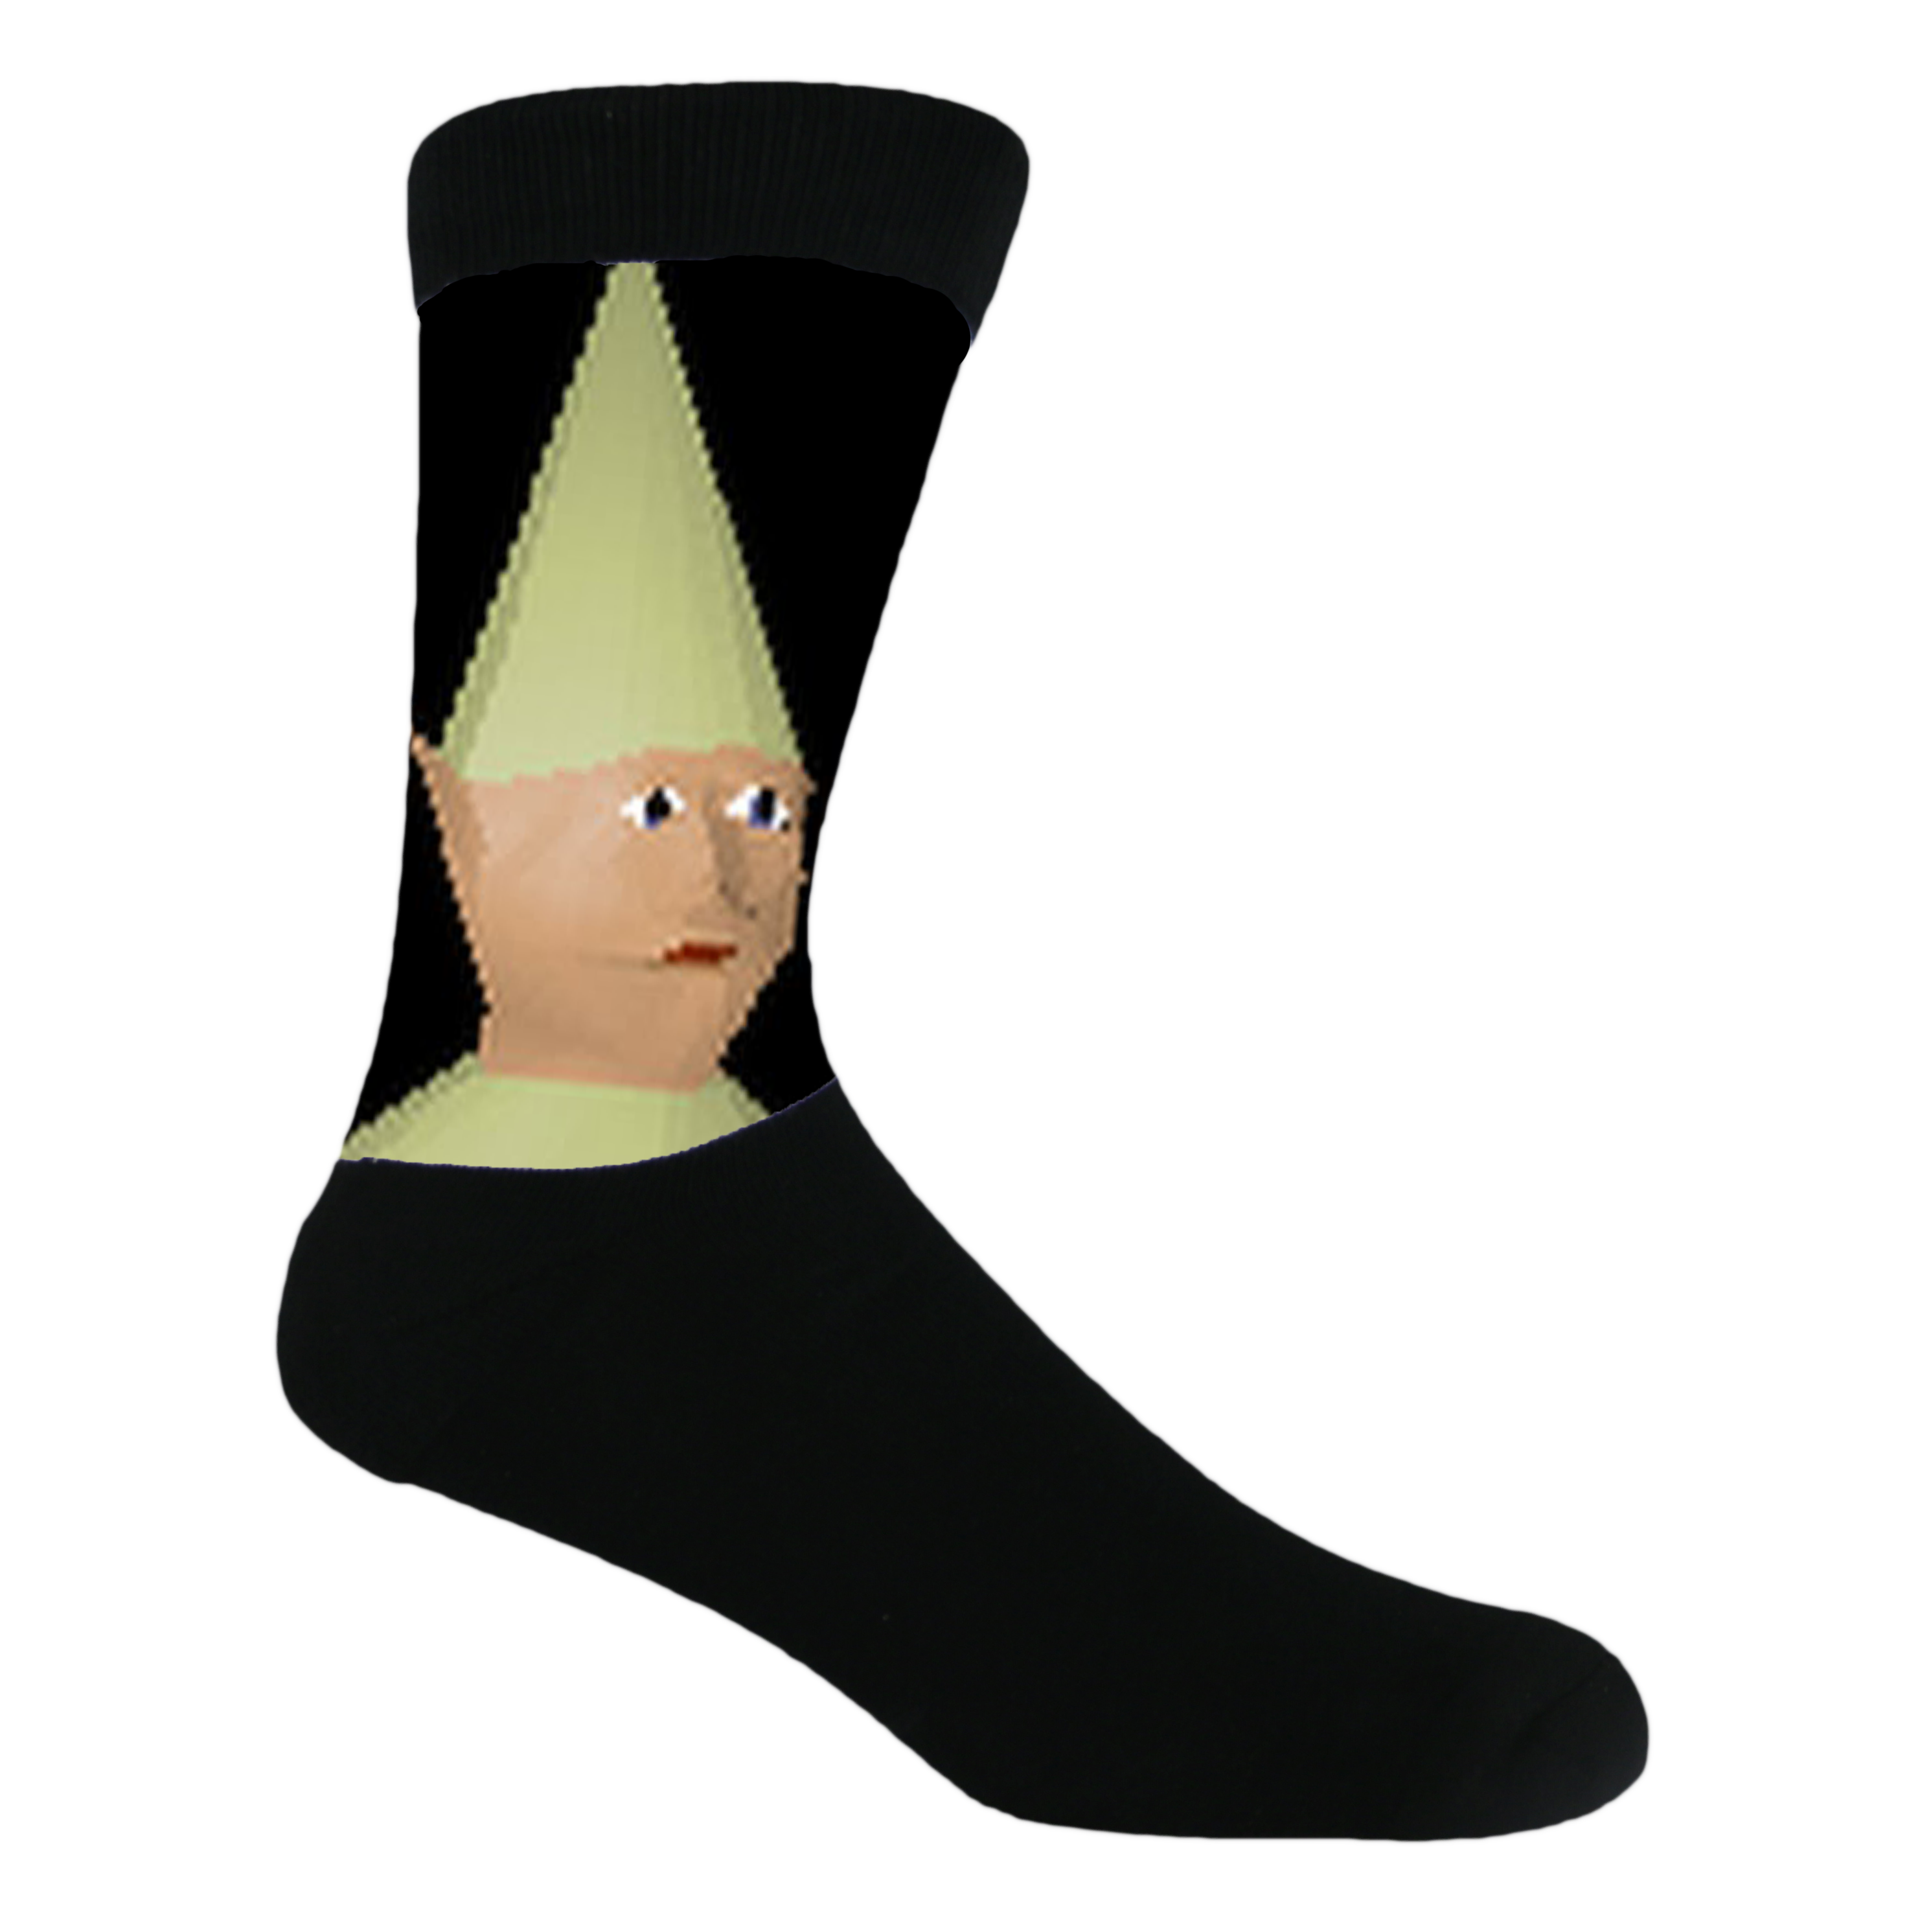 Confused math lady meme png. Gnome child dank socks